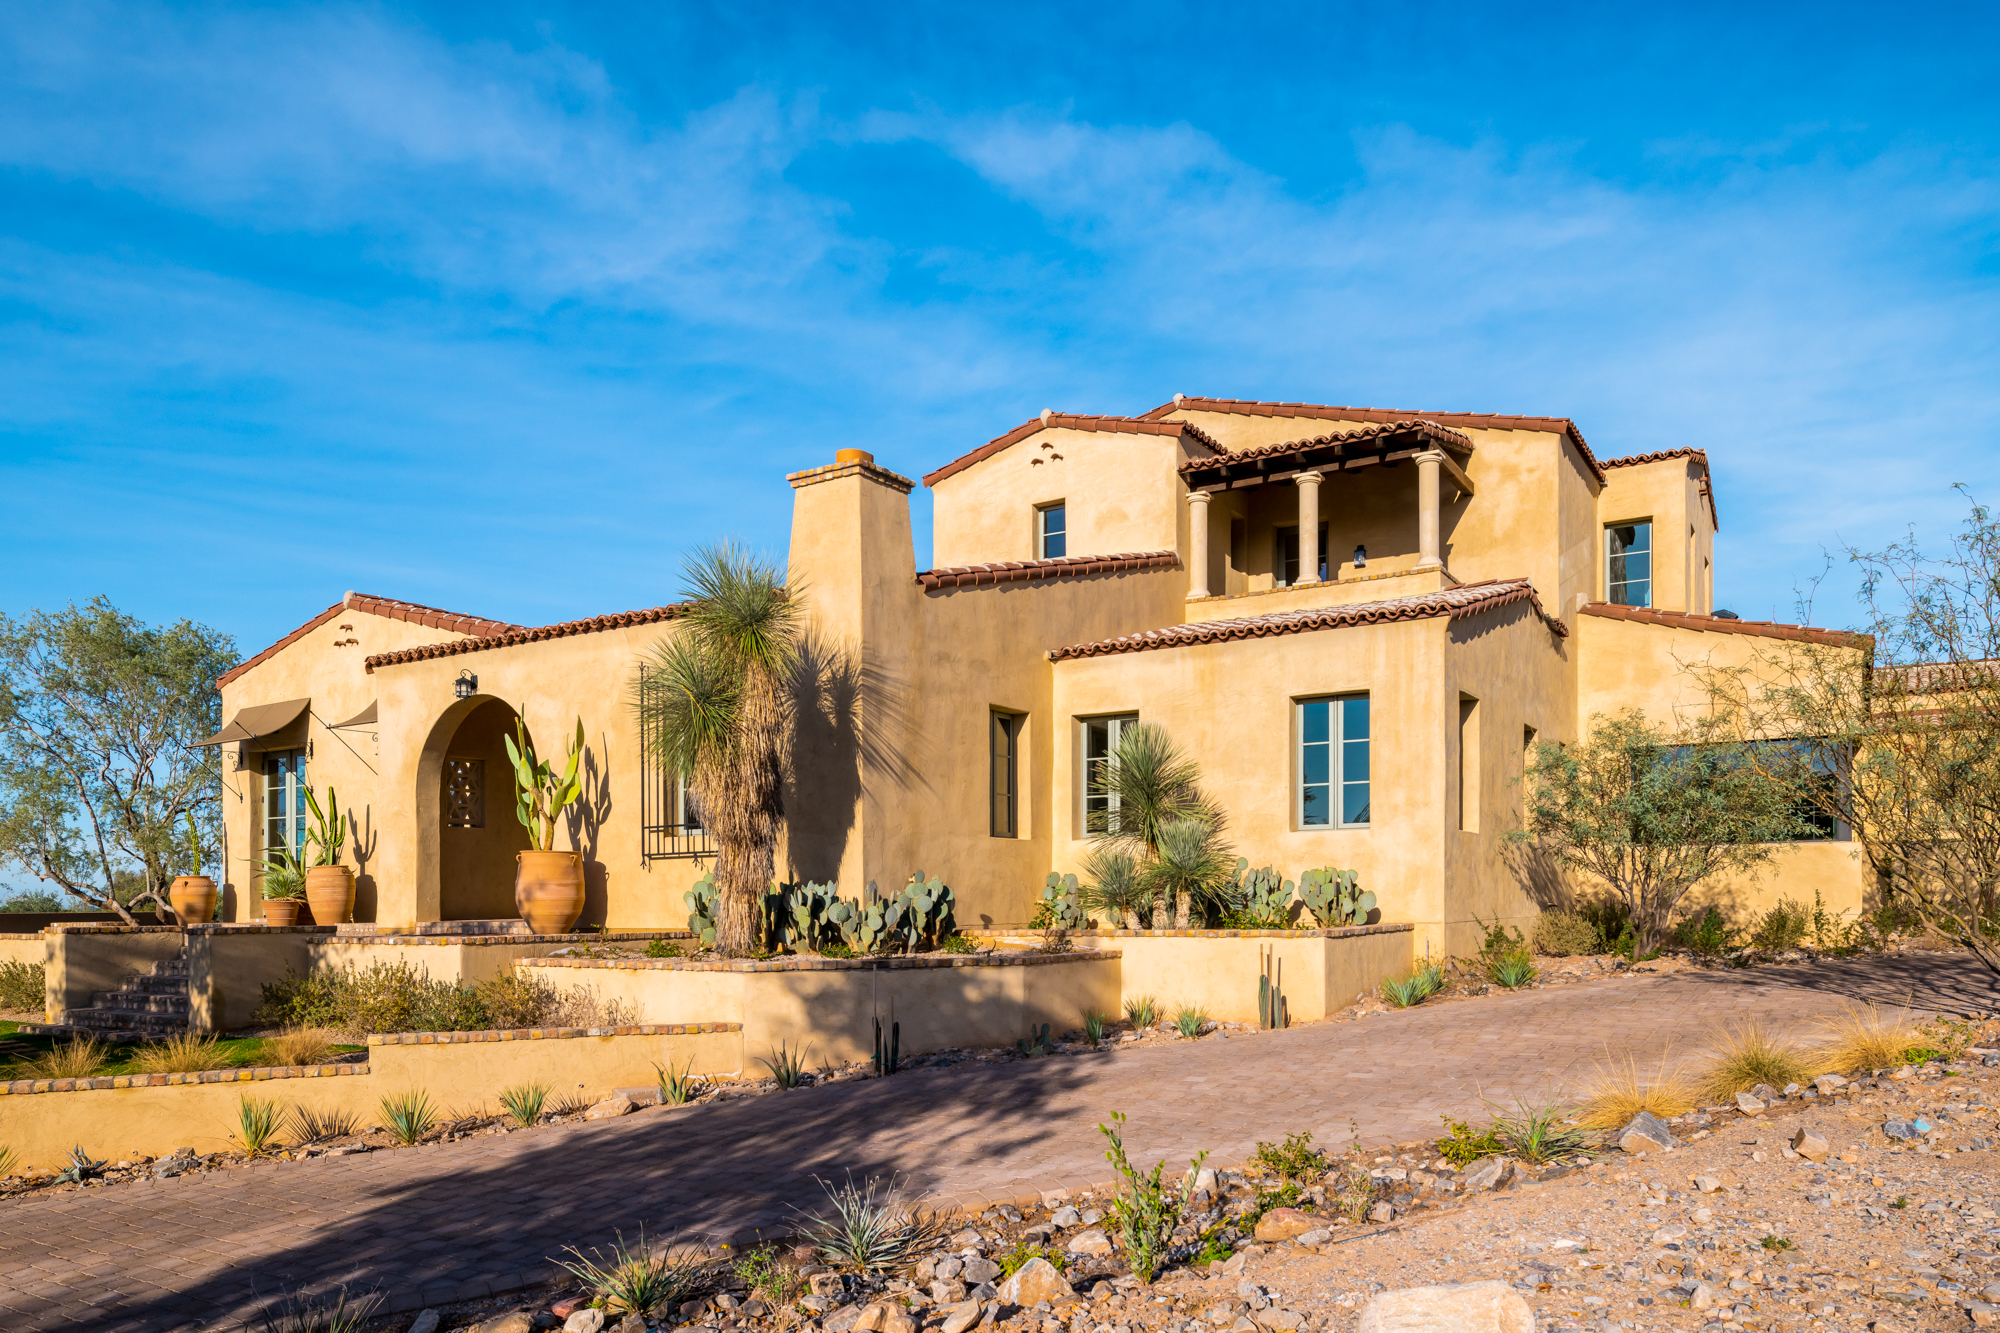 Silverleaf Home_Architecture_An Pham Photography_A852910_PSEdited.jpg